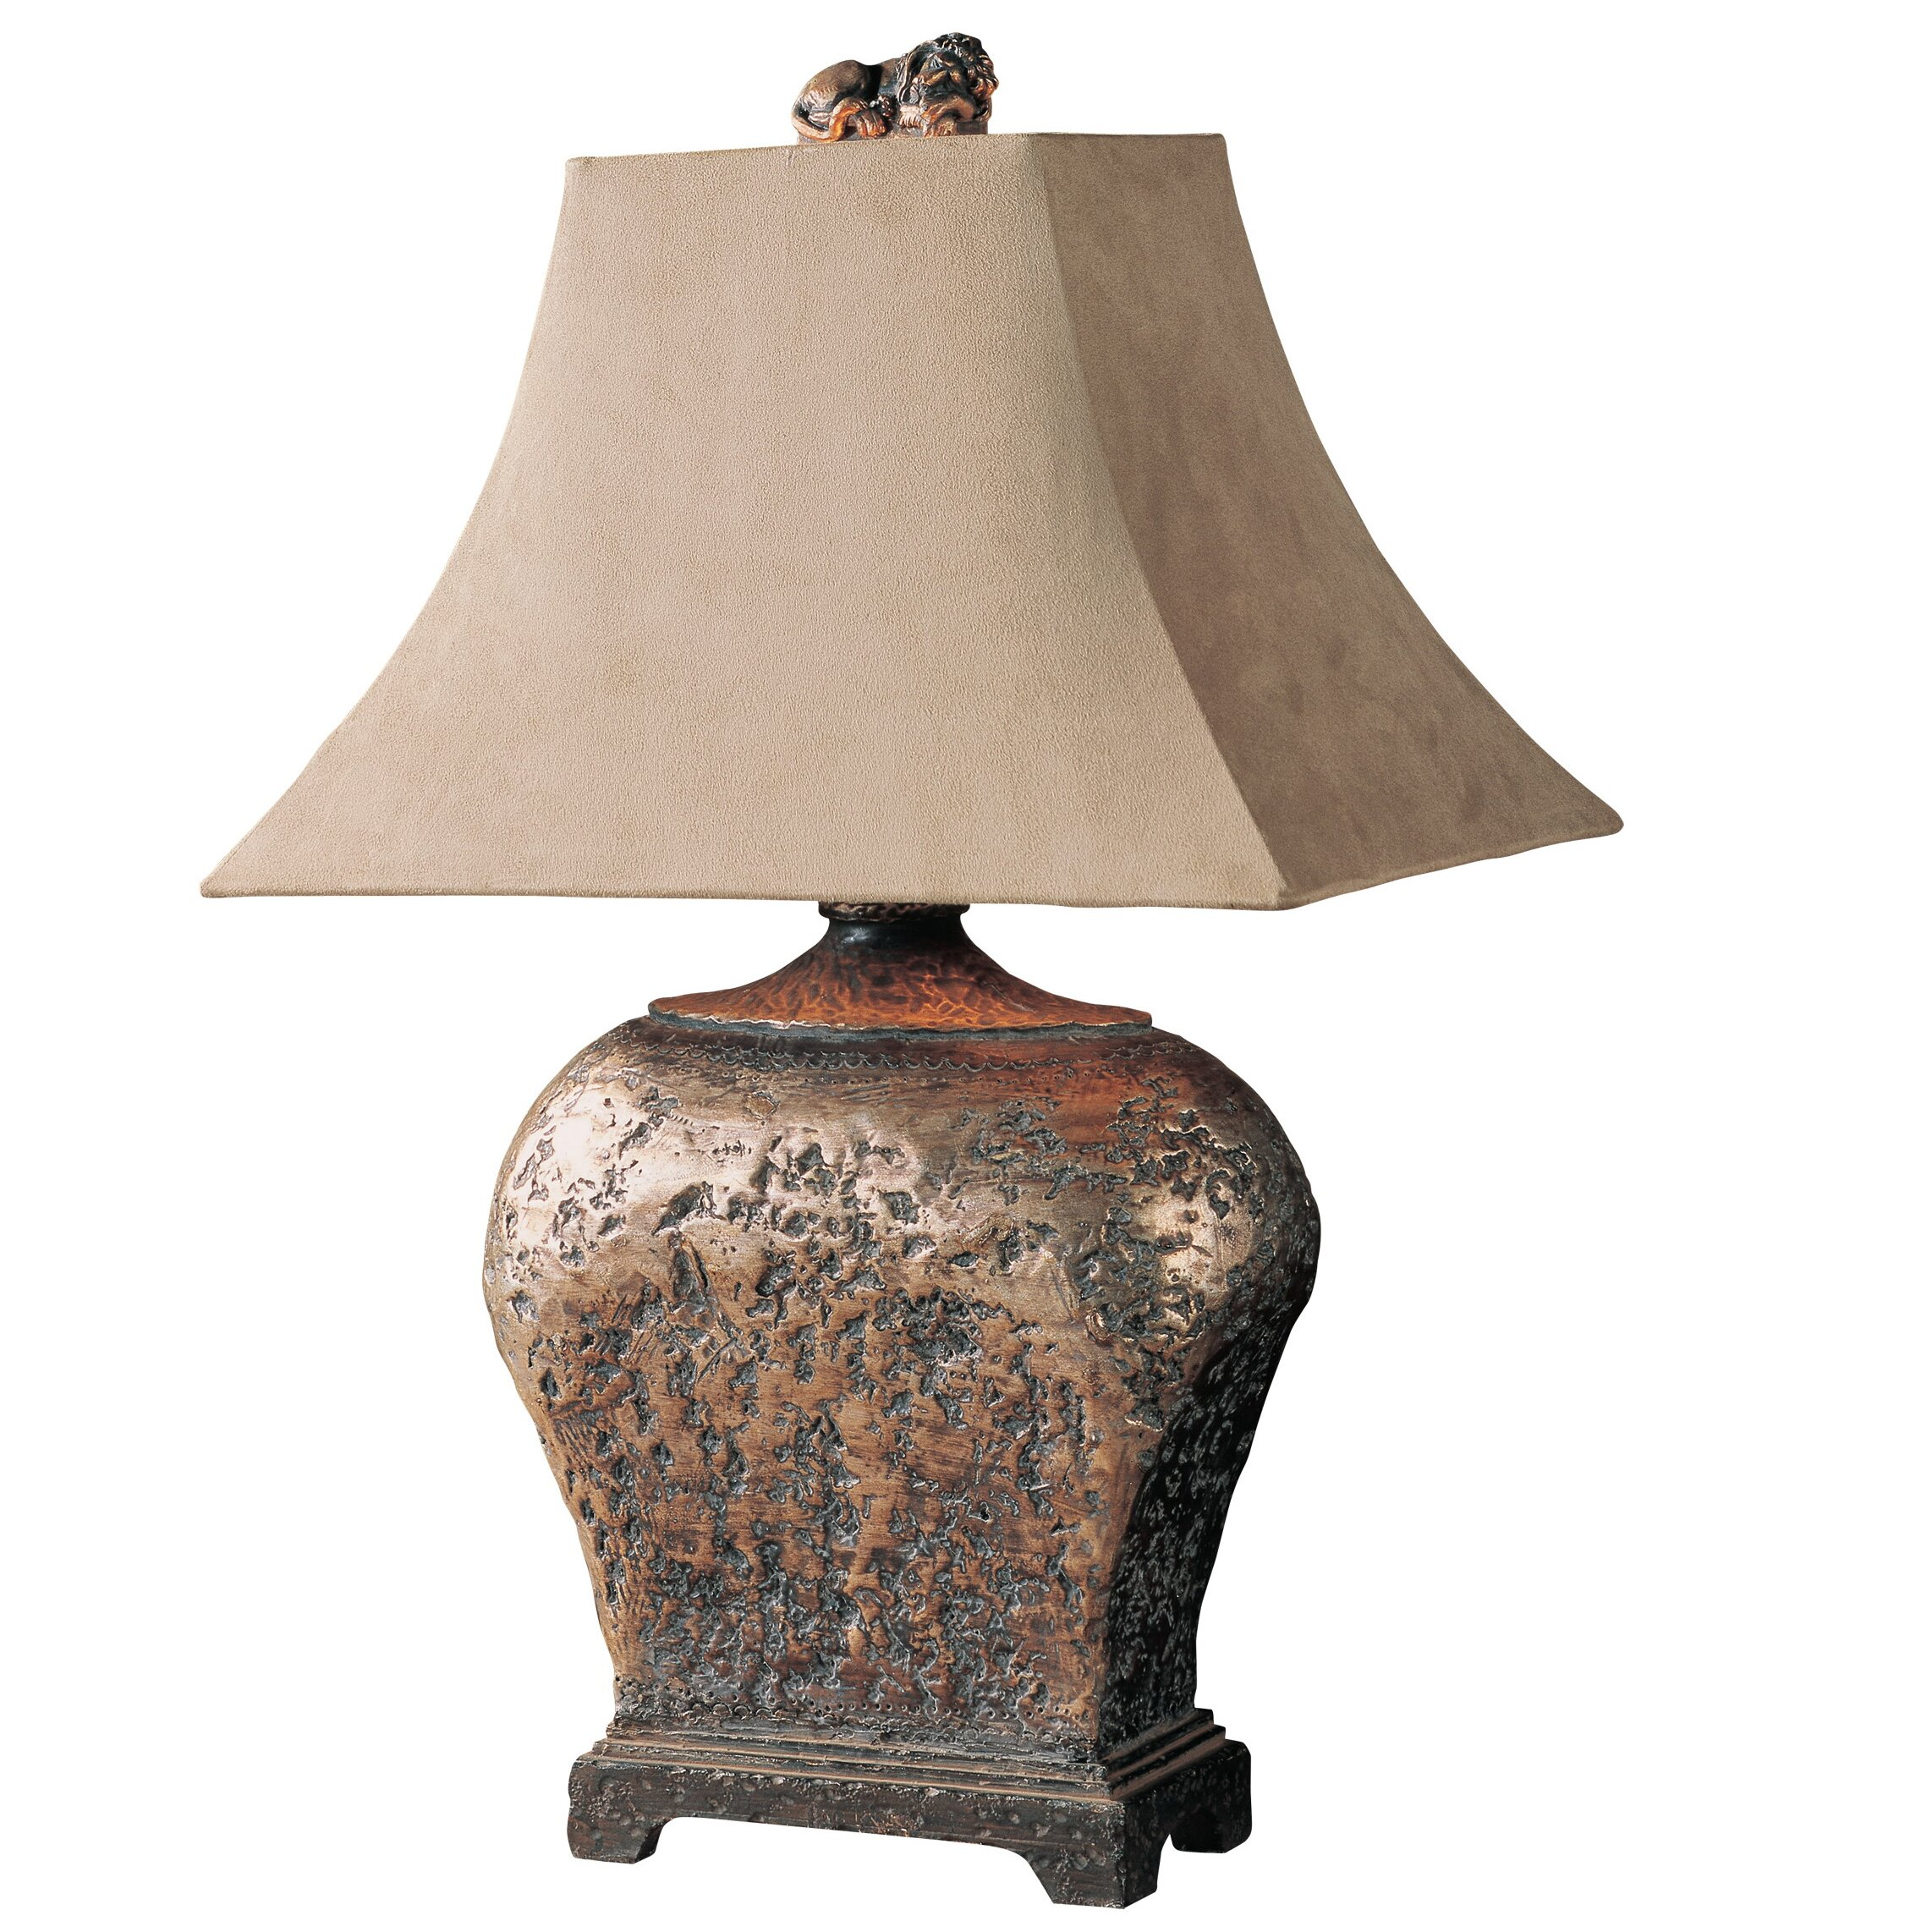 severndroog 27 h table lamp with bell shade wayfair. Black Bedroom Furniture Sets. Home Design Ideas